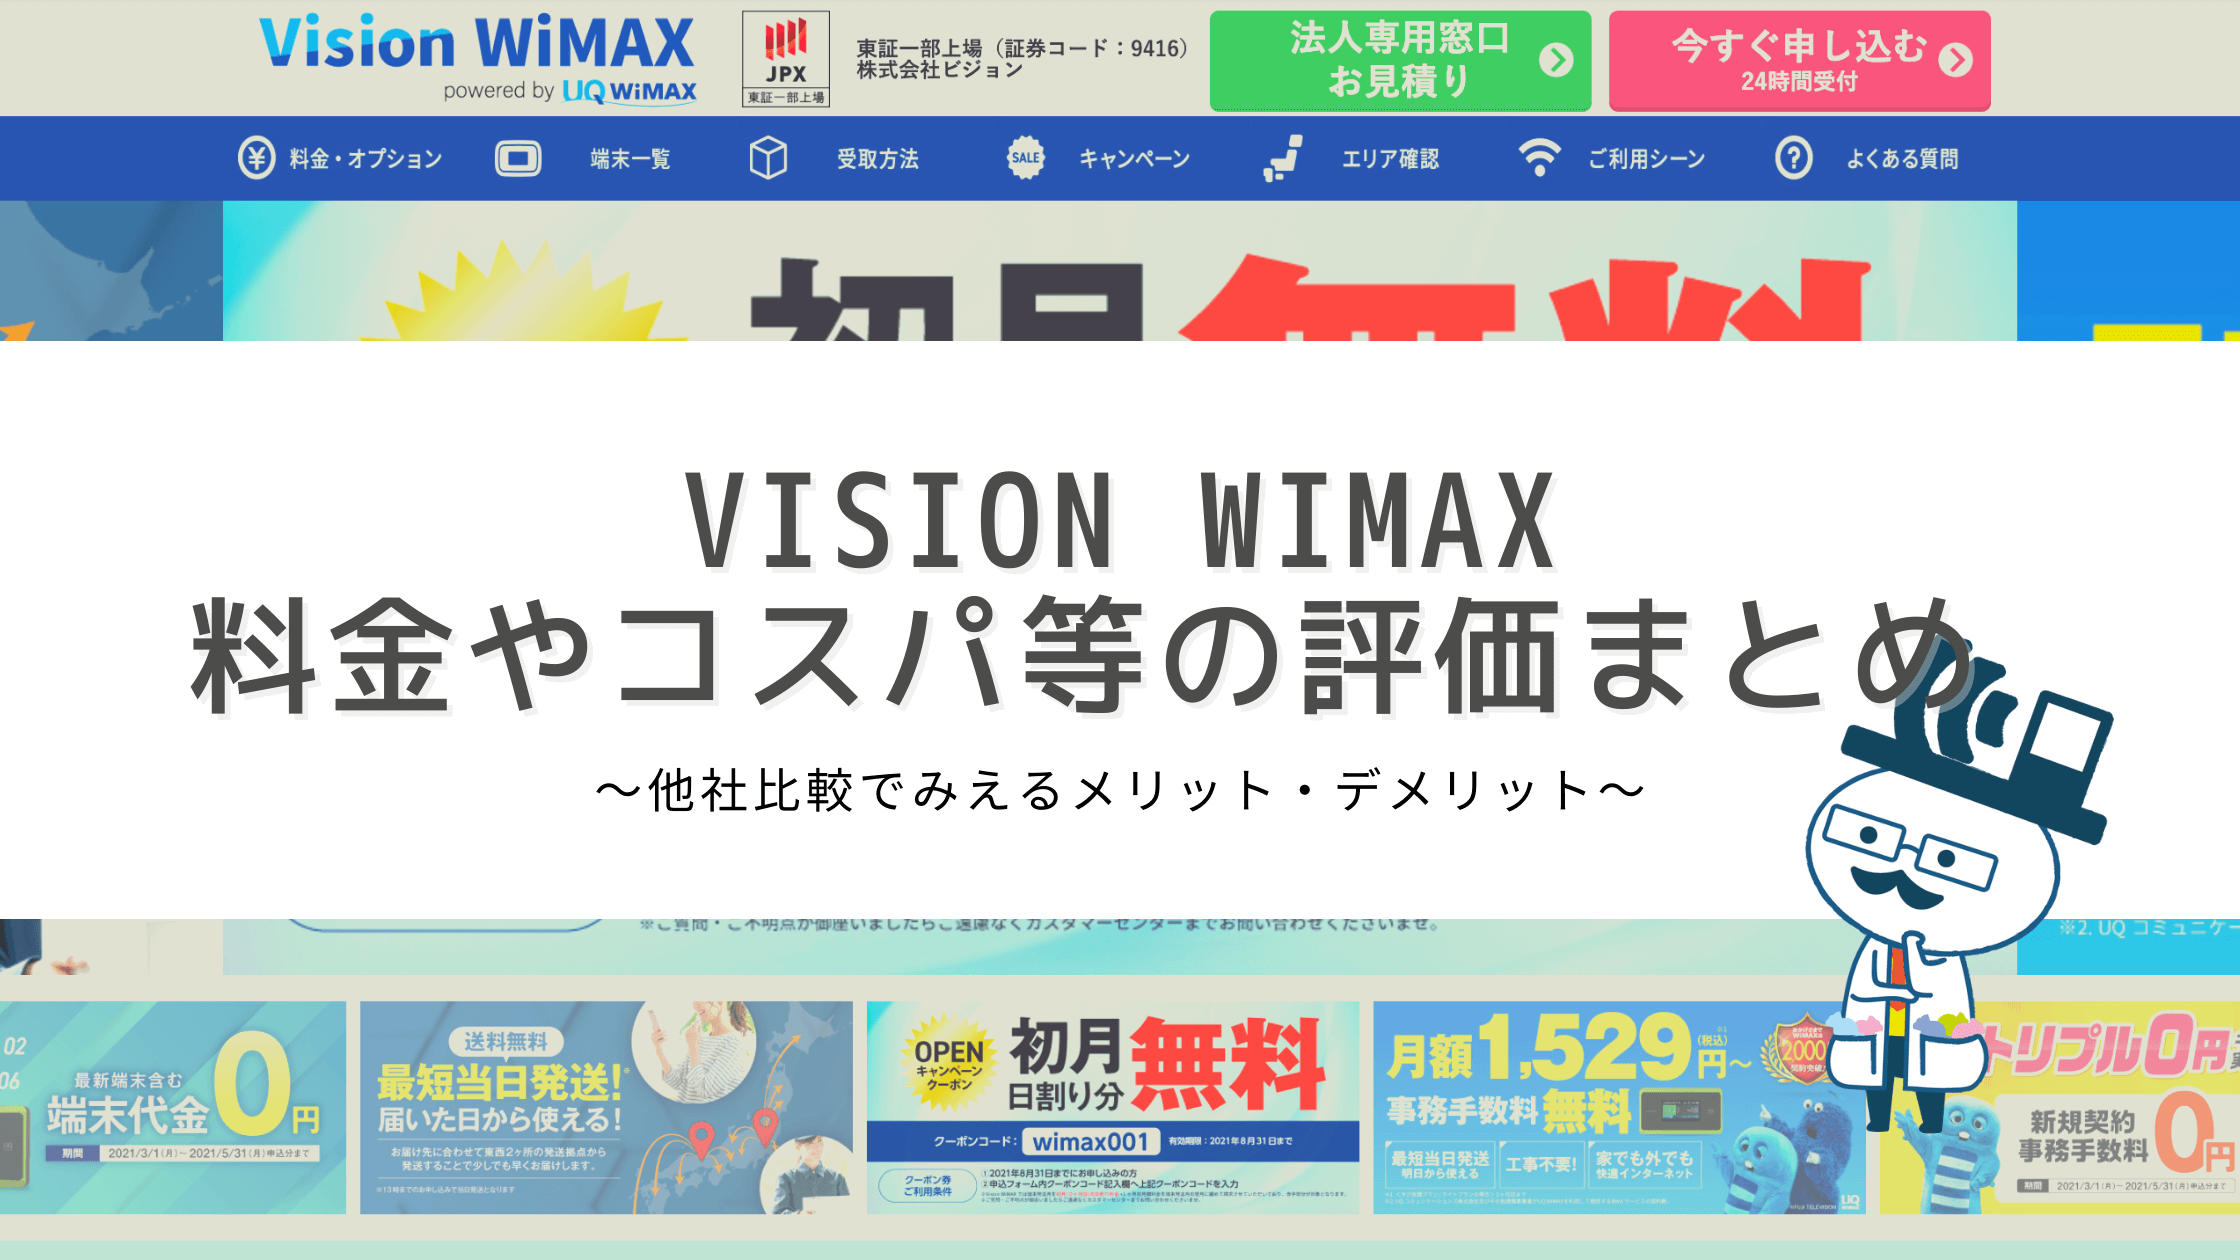 Vision WiMAXの料金・キャンペーン評価まとめ!他社比較で見えるメリット・デメリット